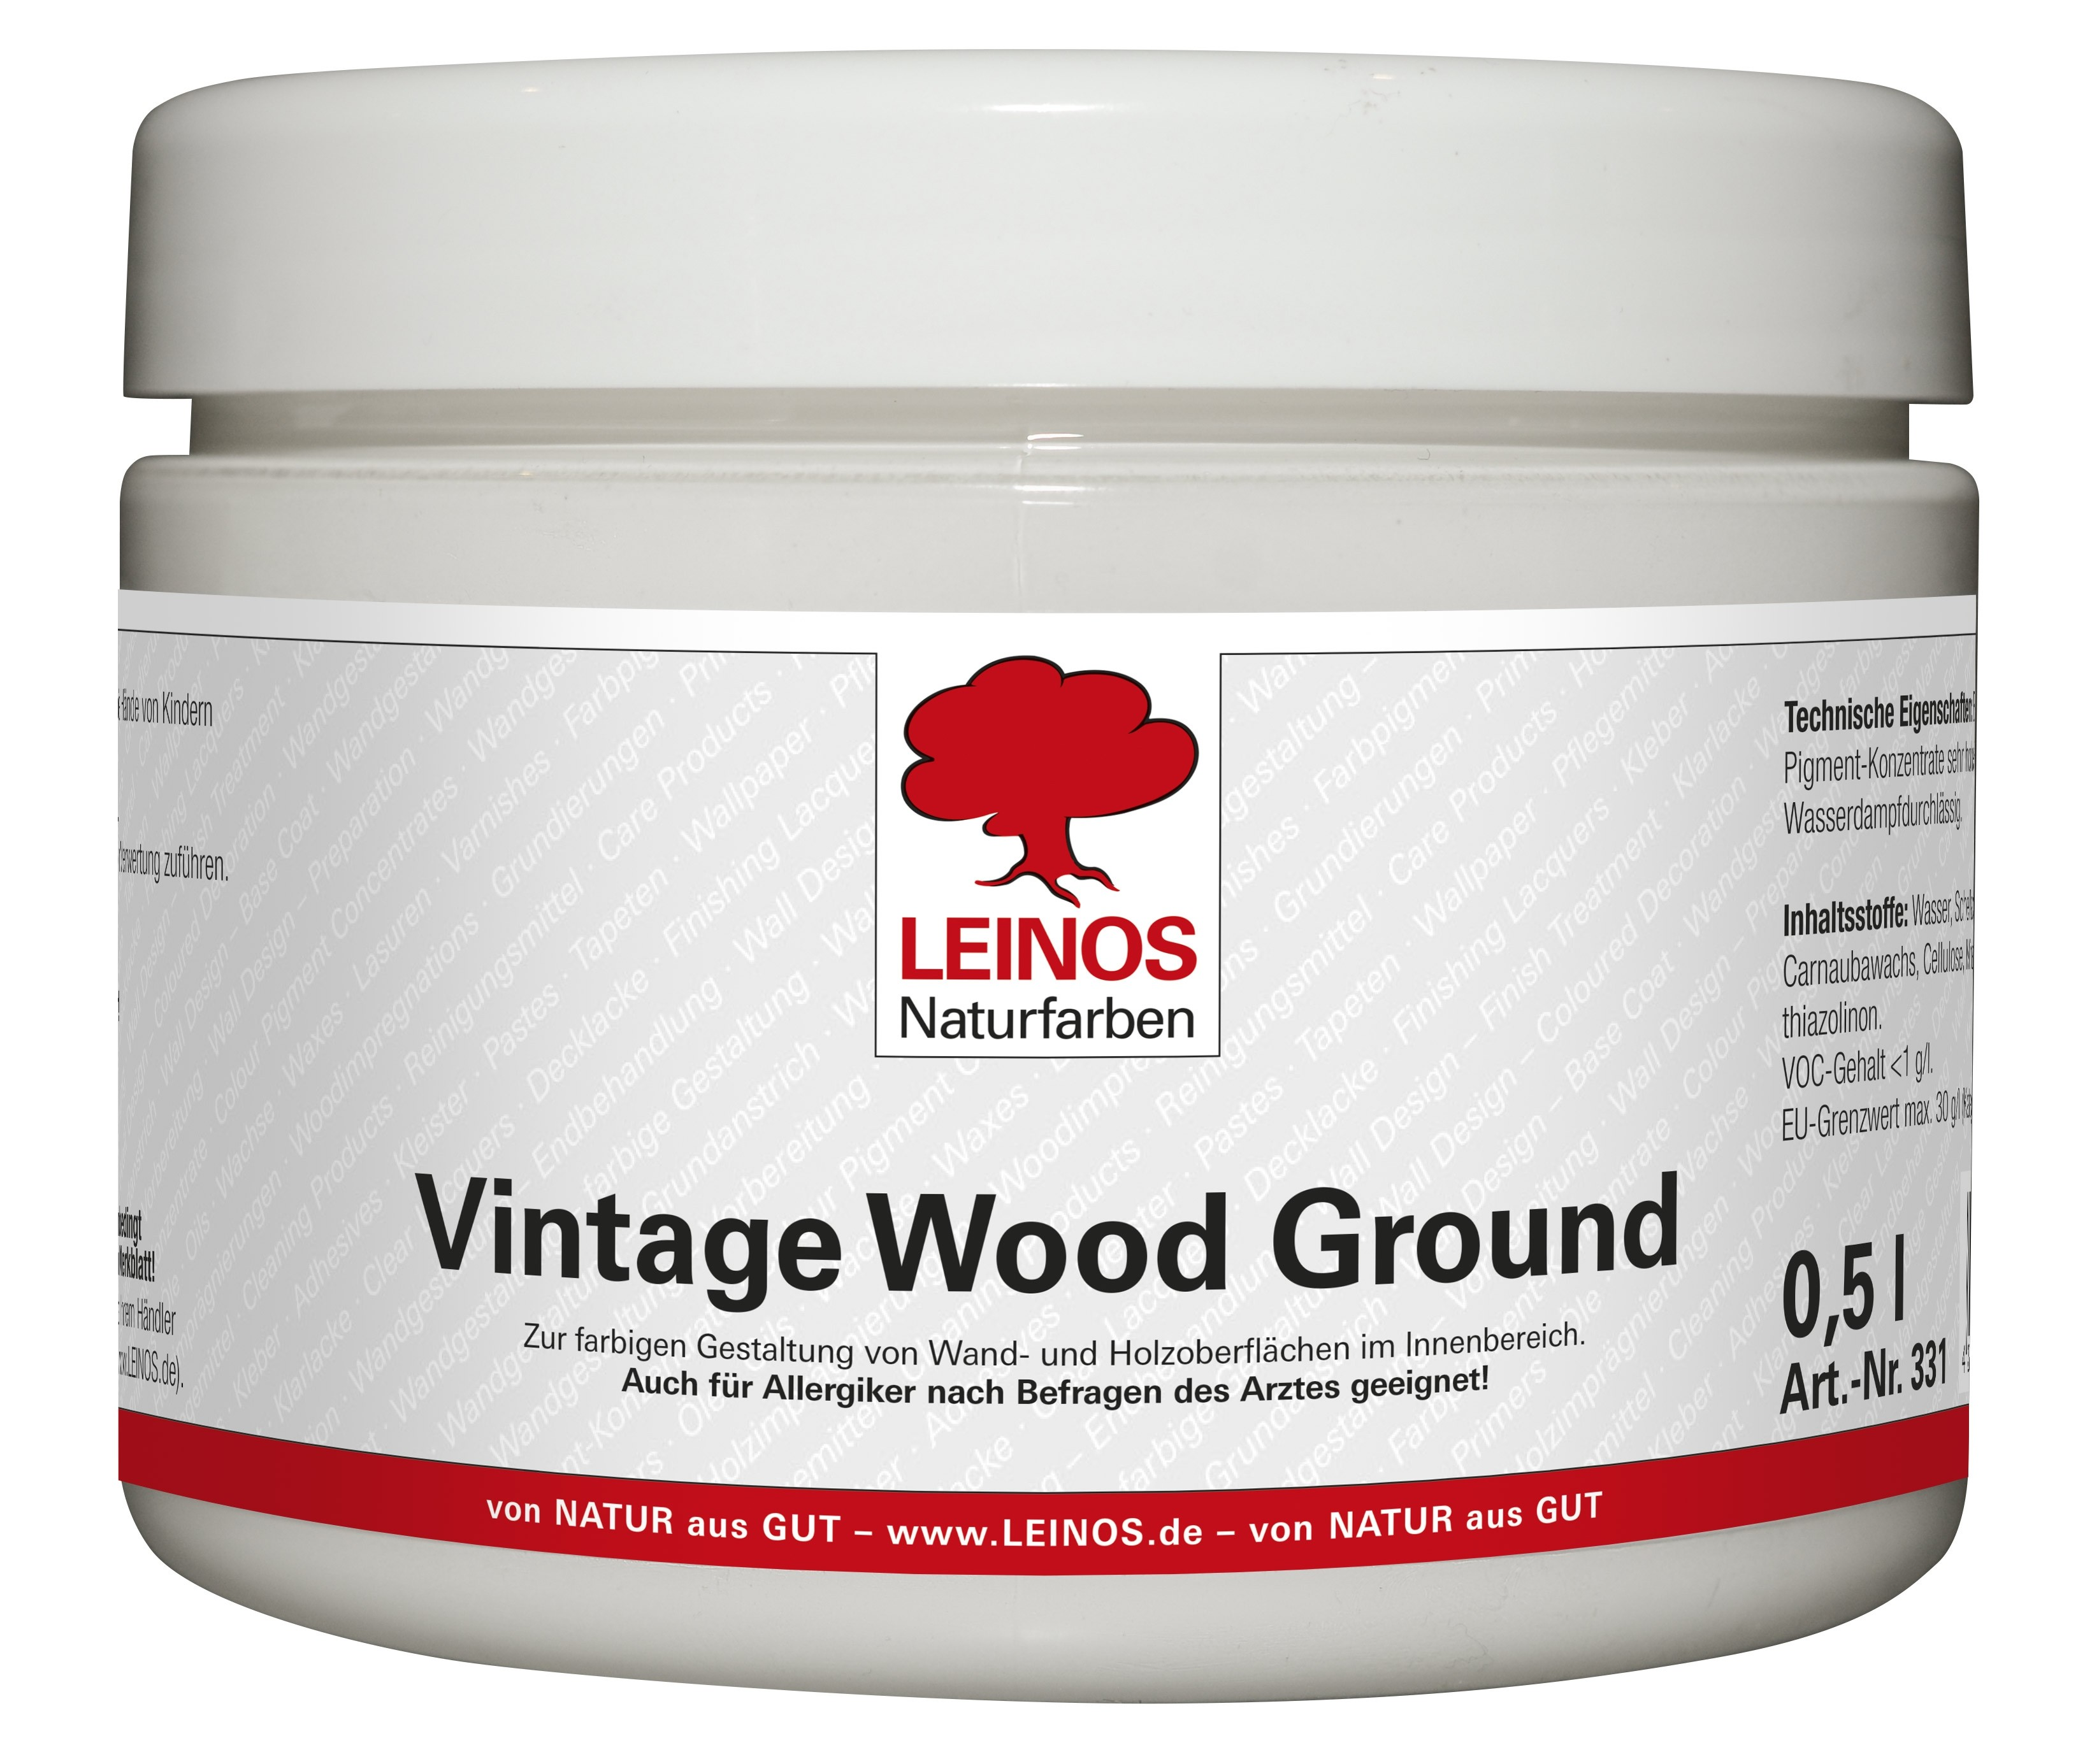 LEINOS Vintage Wood Ground 331  0,5L